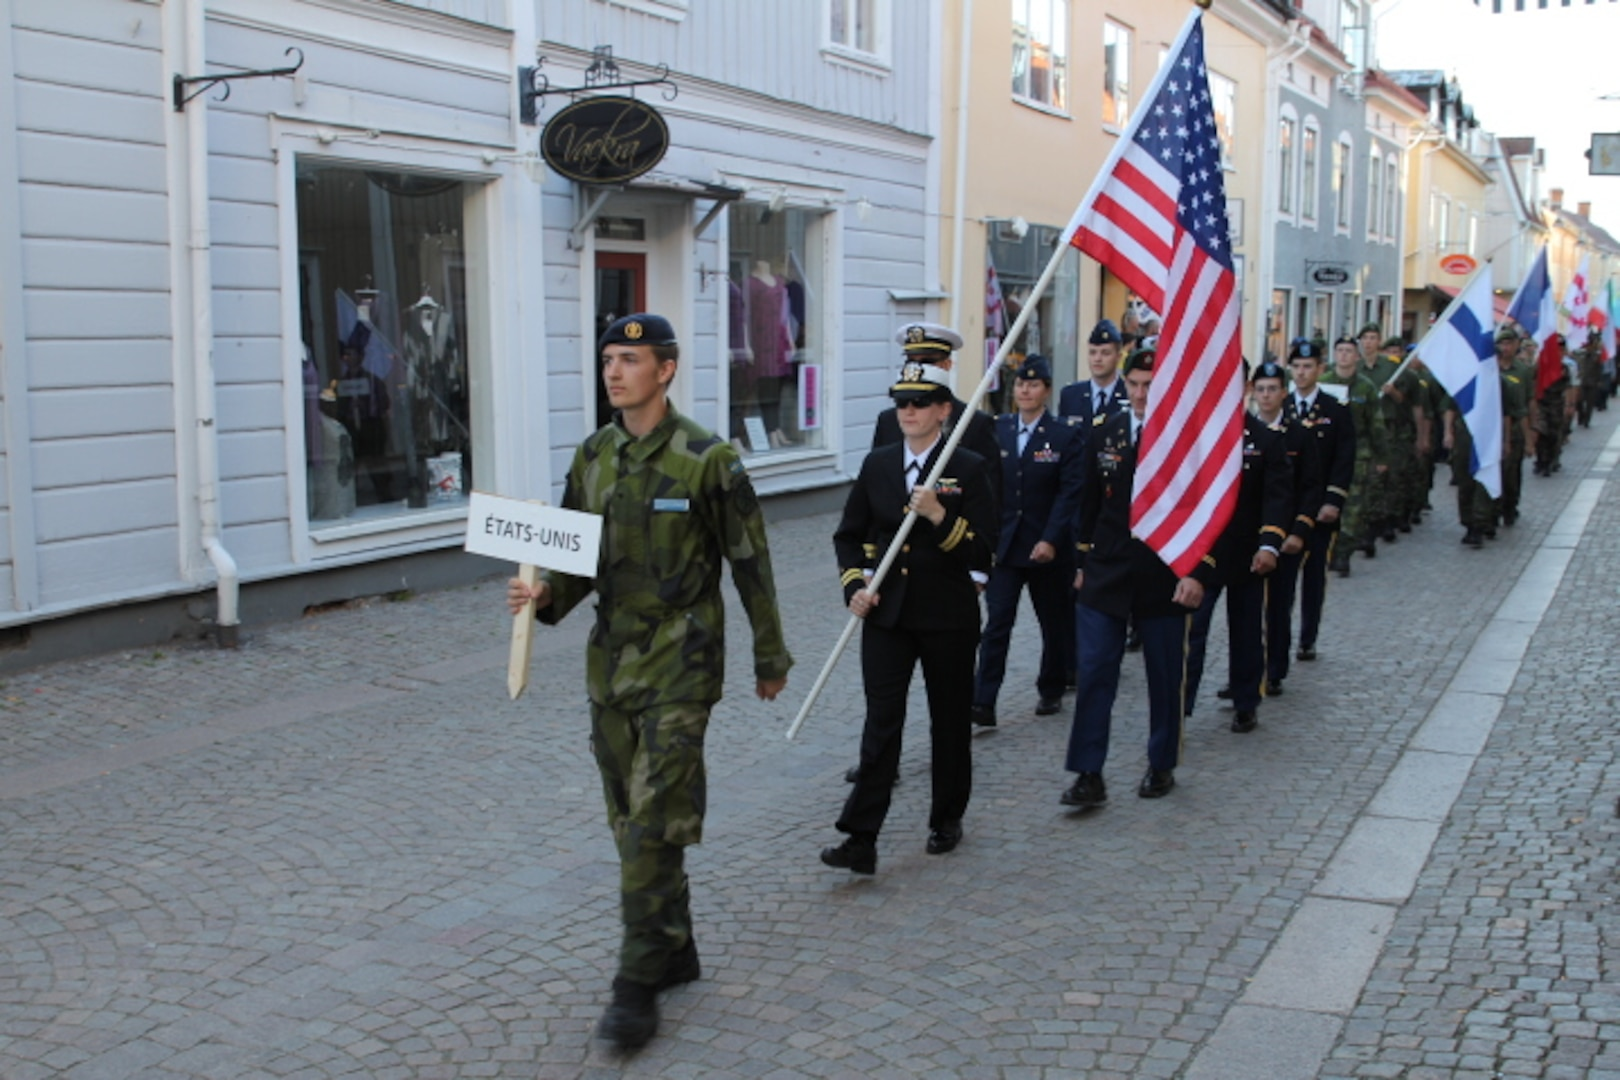 Team USA marches in to the opening ceremony of the 2013 CISM World Orienteering Military Championship hosted by the Swedish Armed Forces in Eksjo, Sweden from 26 August to 1 September.